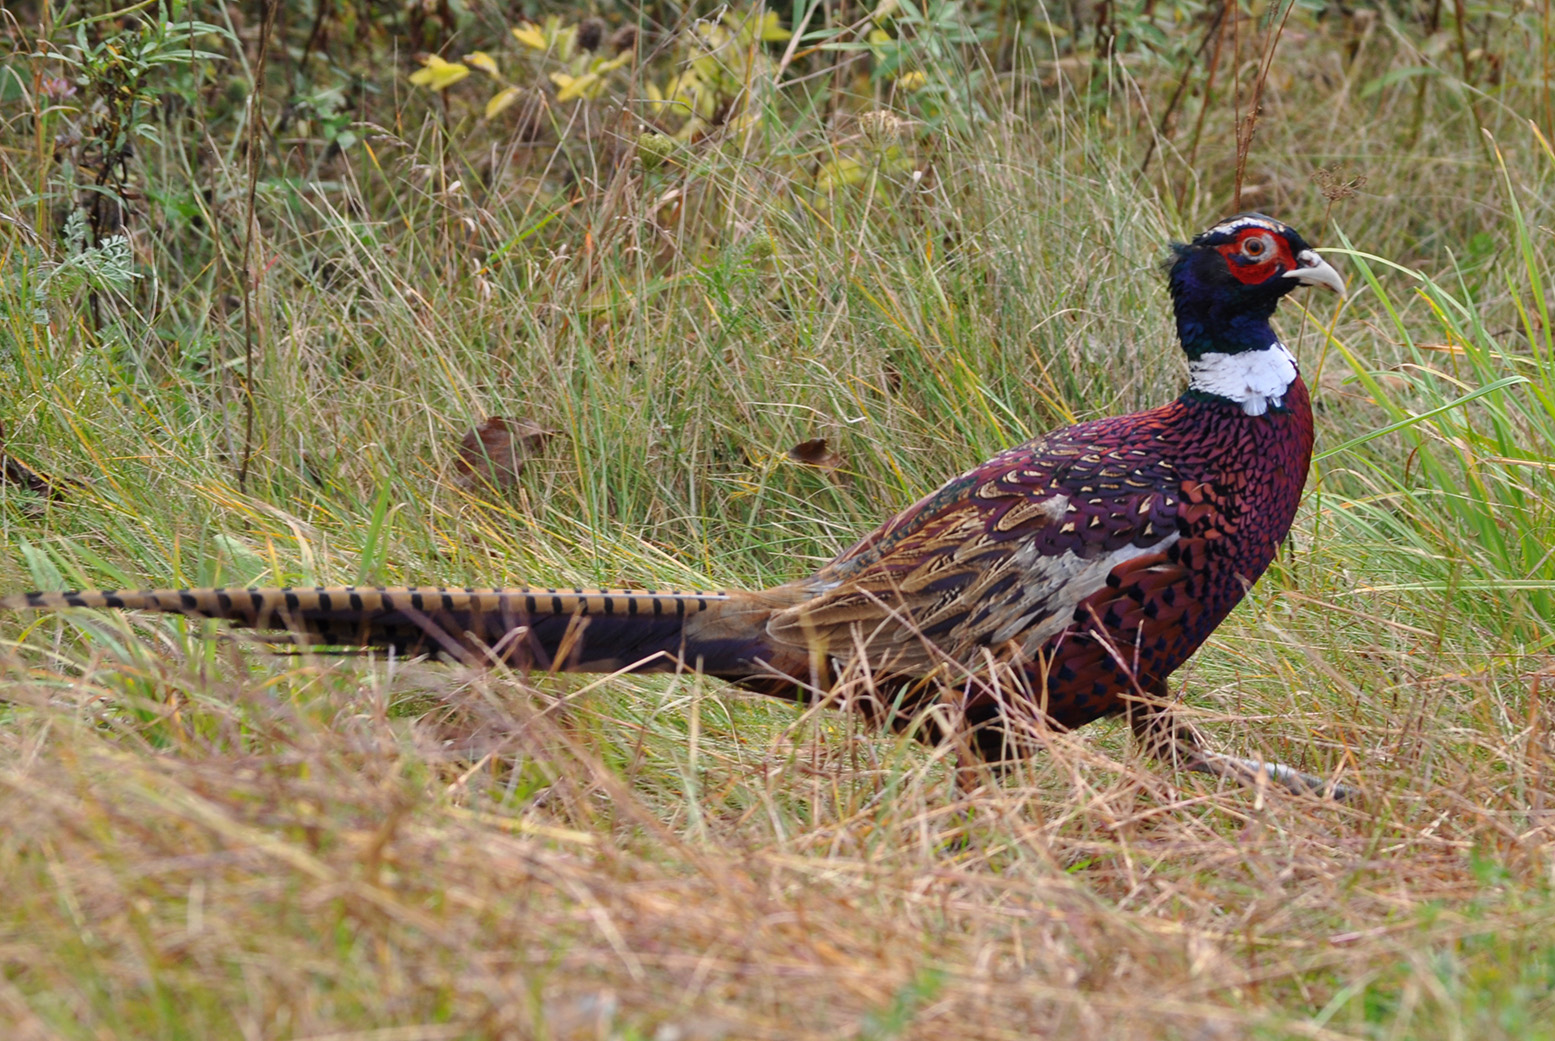 A common pheasant in name only, this handsome bird is a sight to behold or, even better, to photograph, which Gorham's Lori Rumery was fortunate enough to do as it ate seeds by the side of a road.